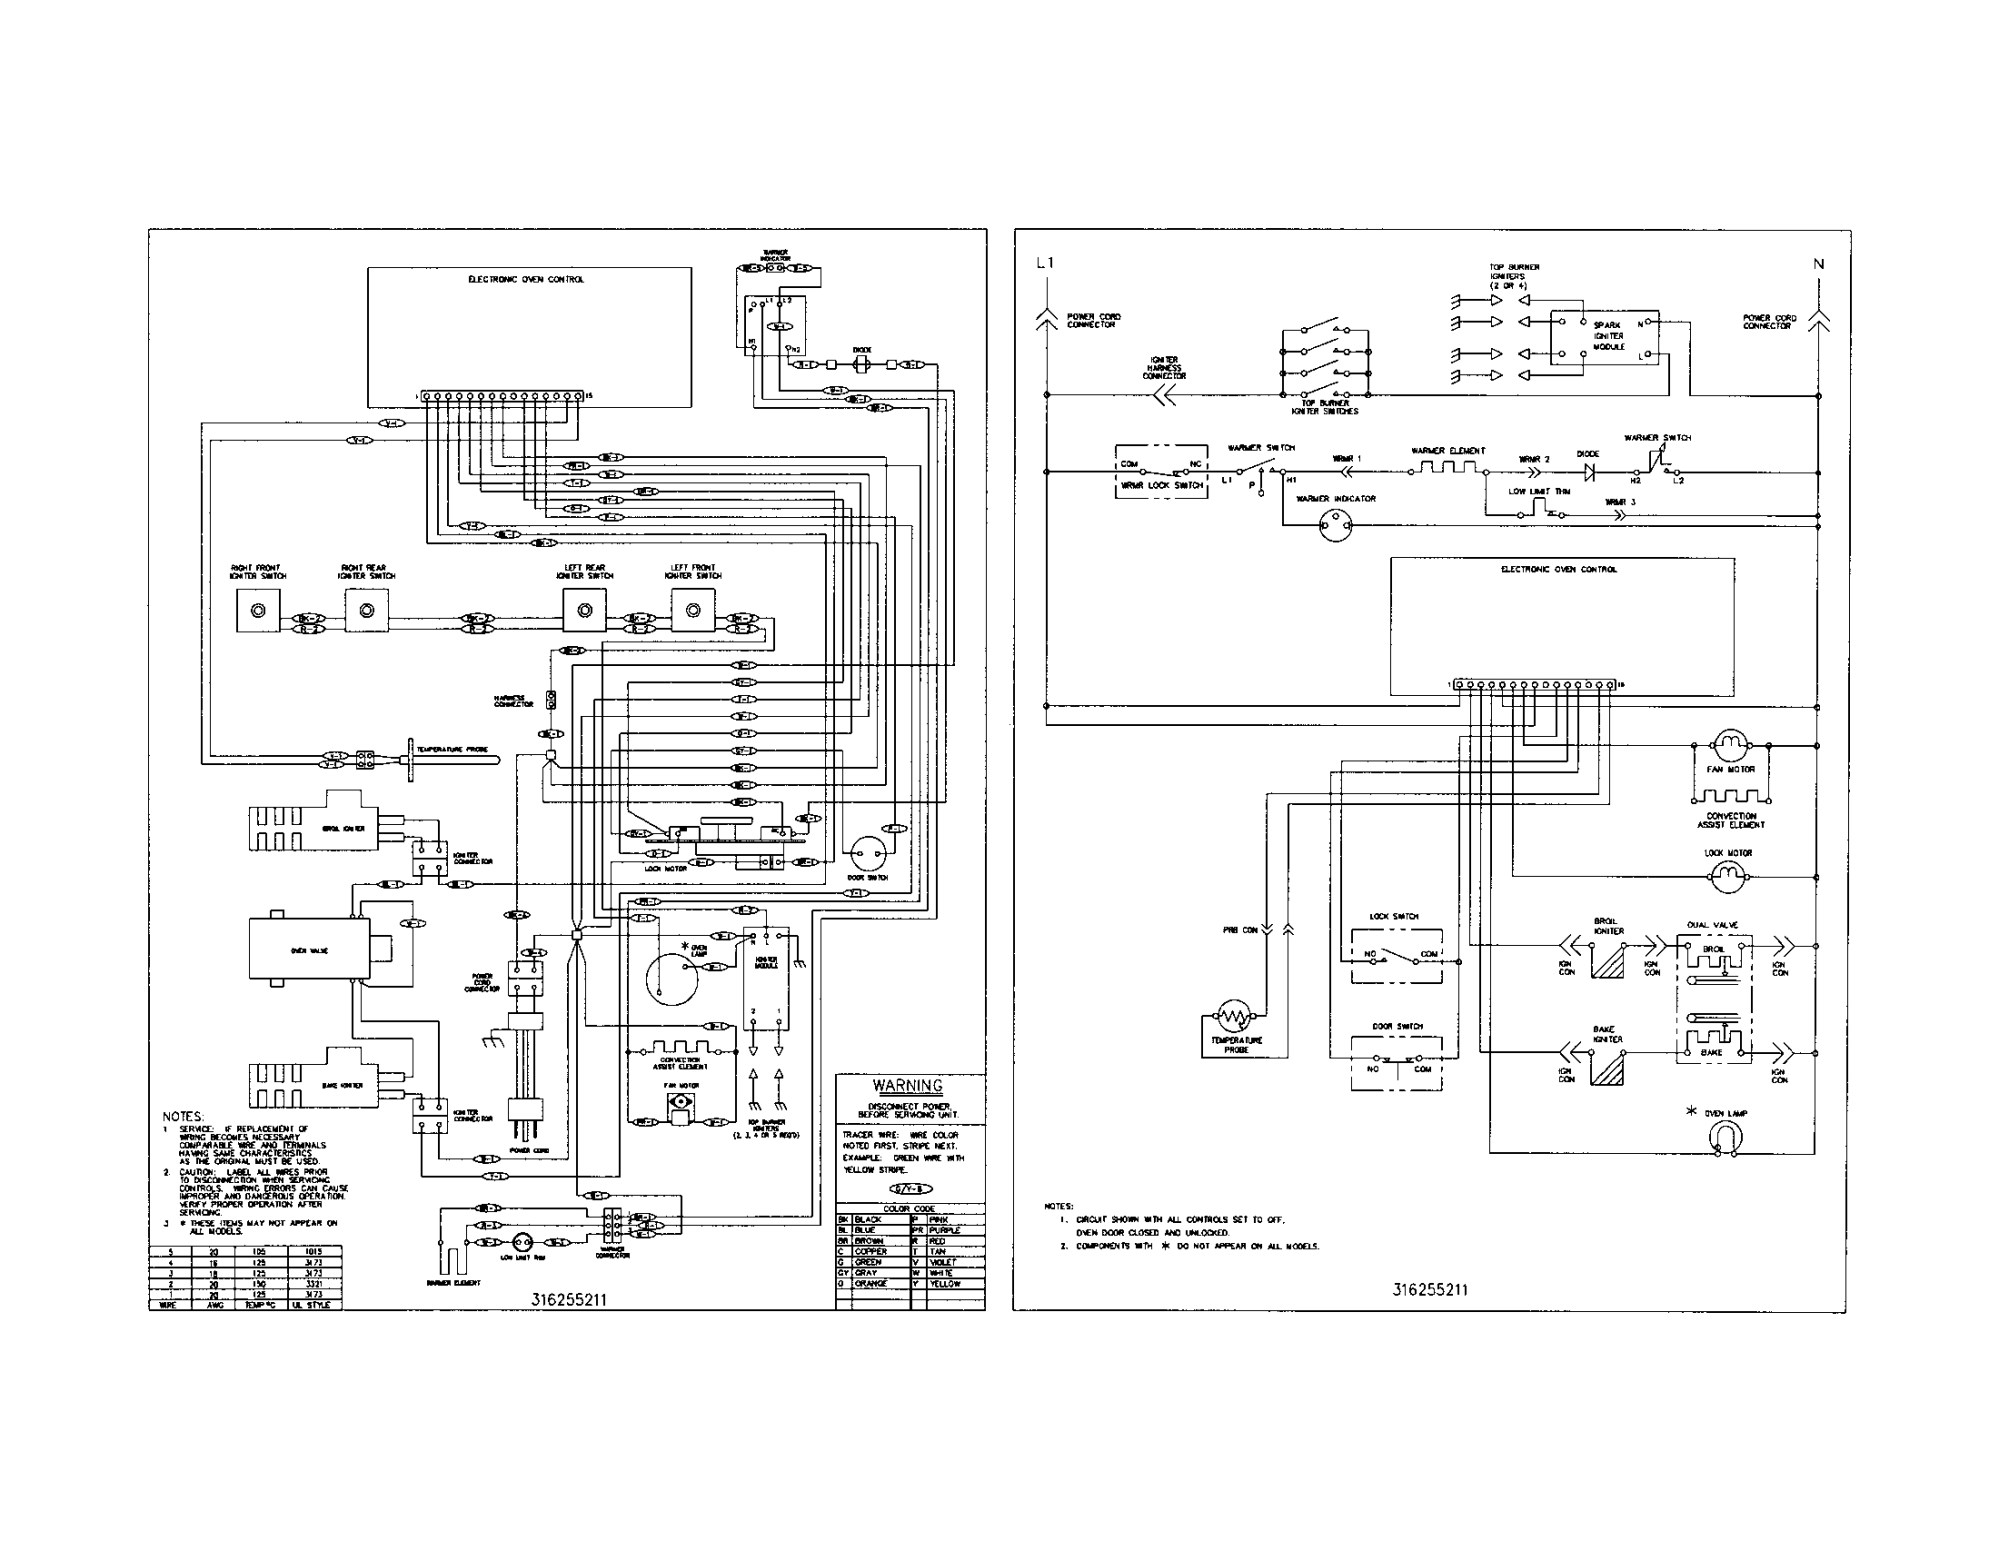 hight resolution of dryer schematic wiring diagram wiring diagram progresif kenmore dryer wiring diagram whirlpool dryer schematic wiring diagram